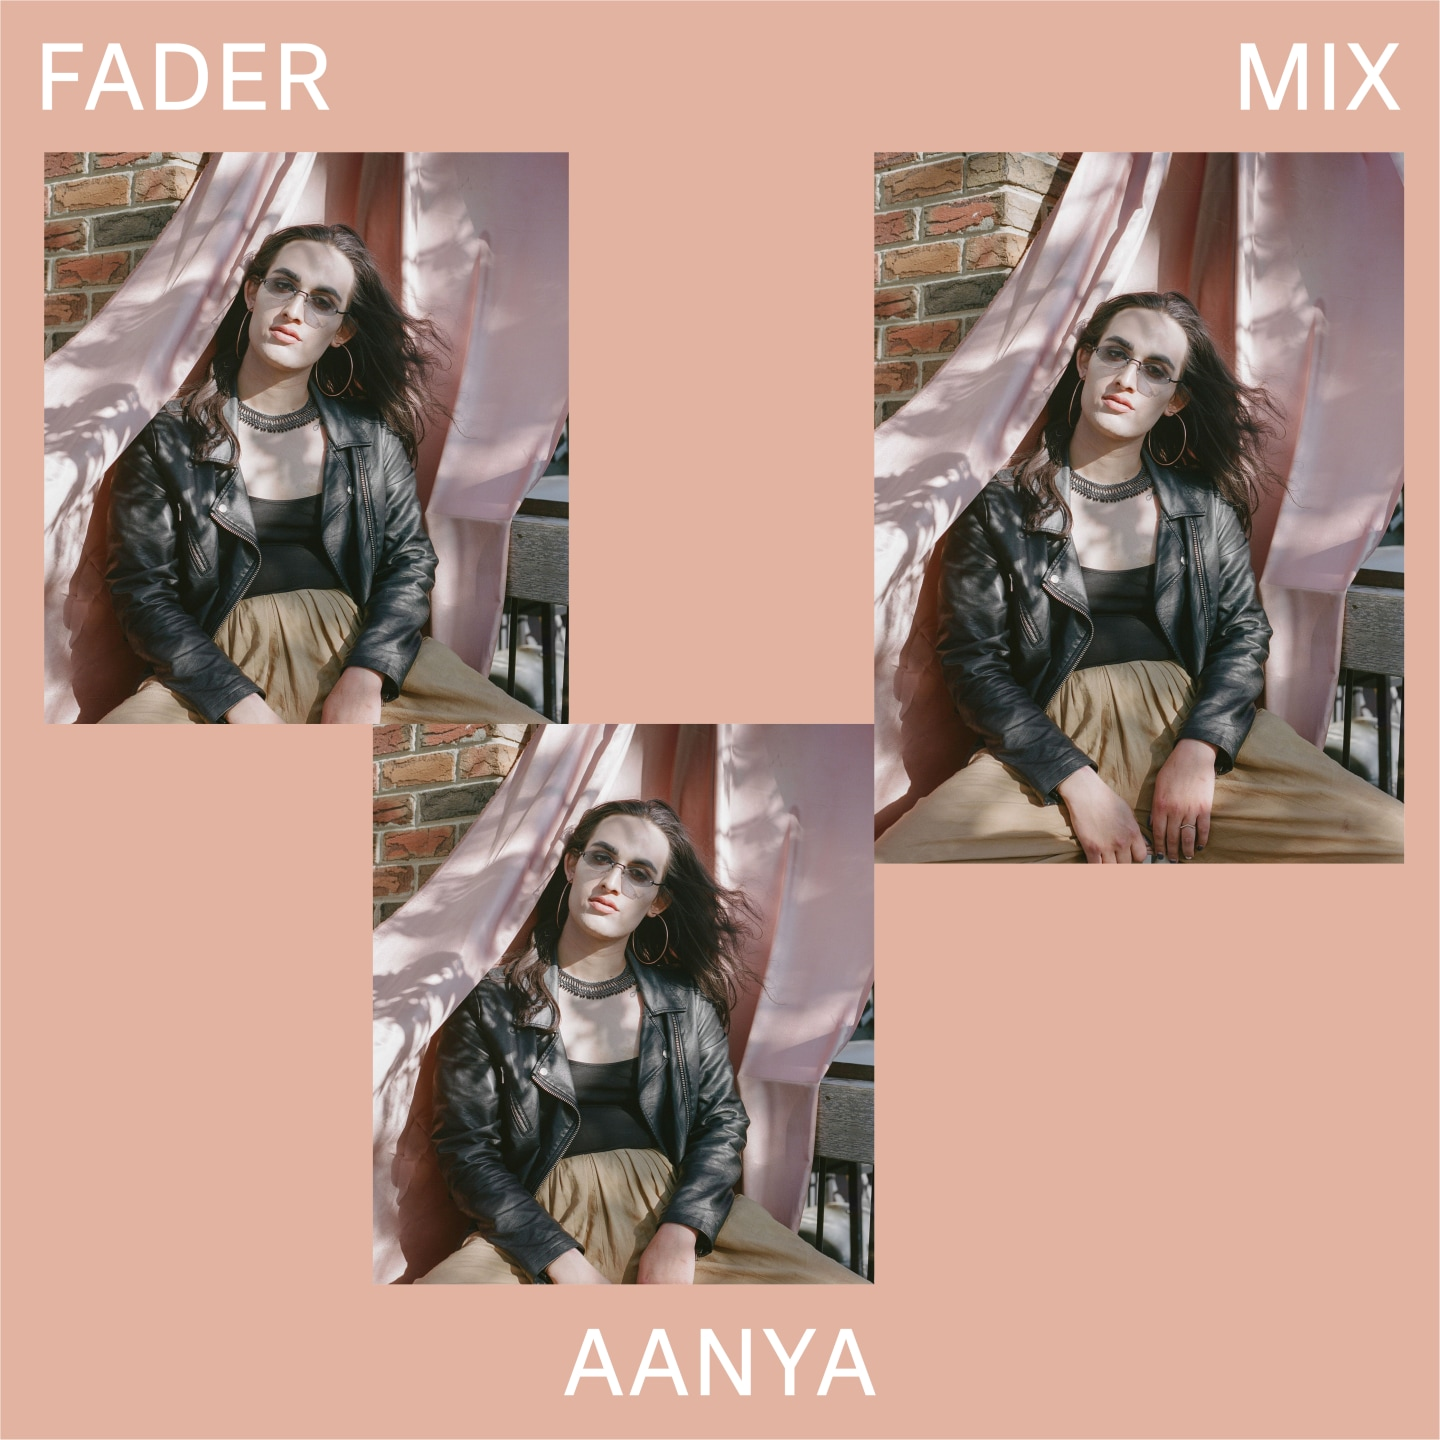 Listen to a new FADER Mix by Aanya